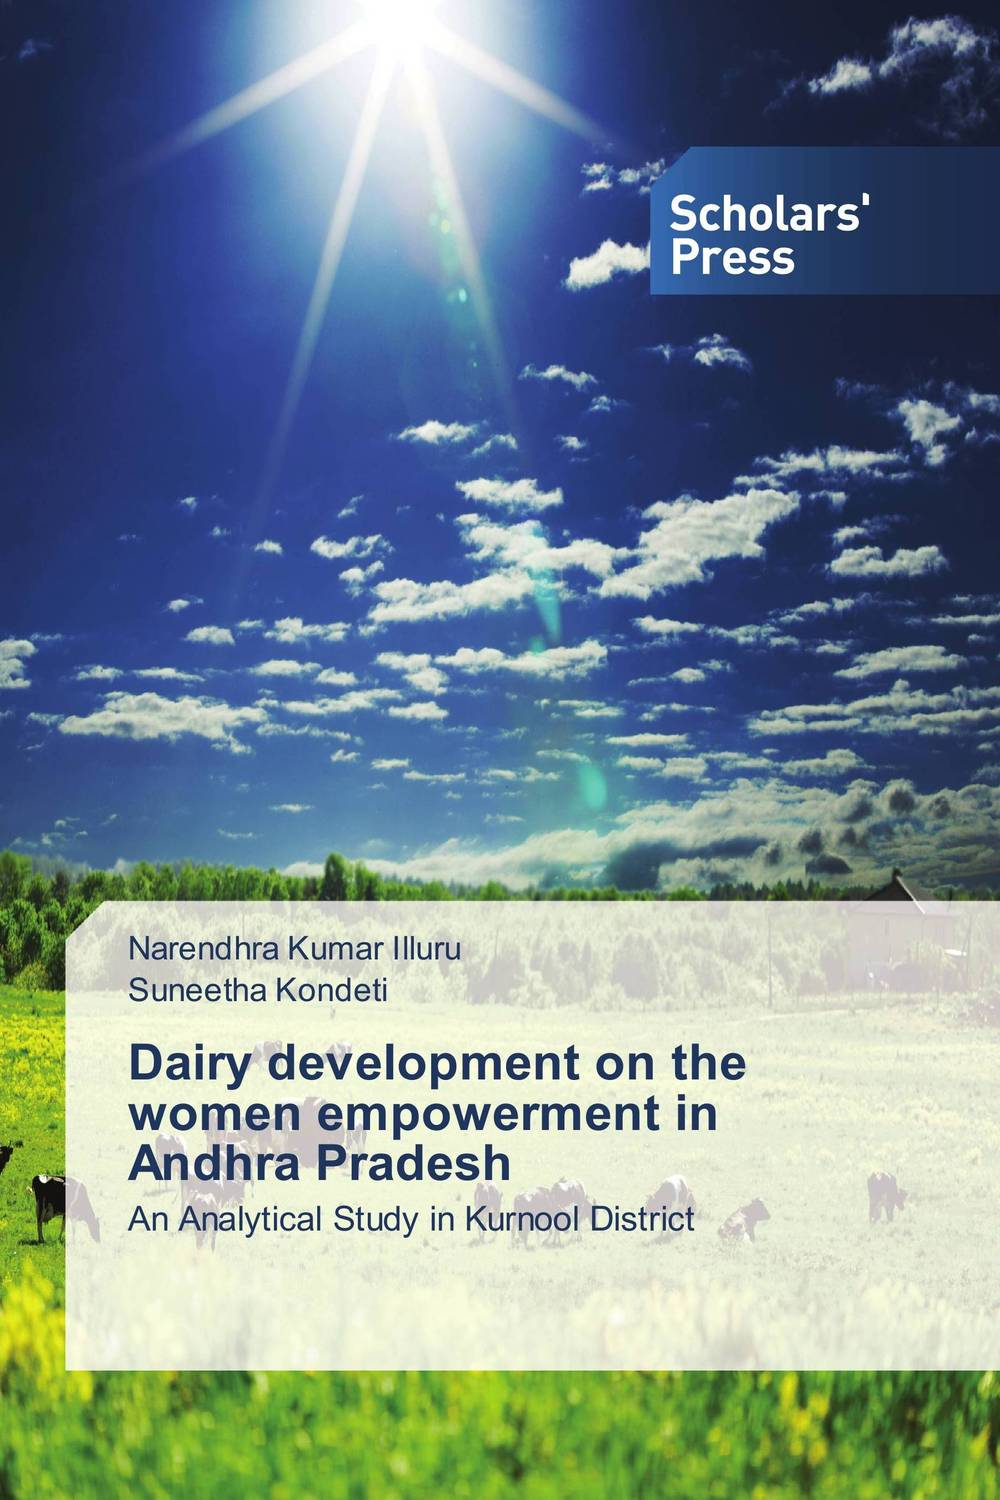 Dairy development on the women empowerment in Andhra Pradesh theatre for women empowerment and development